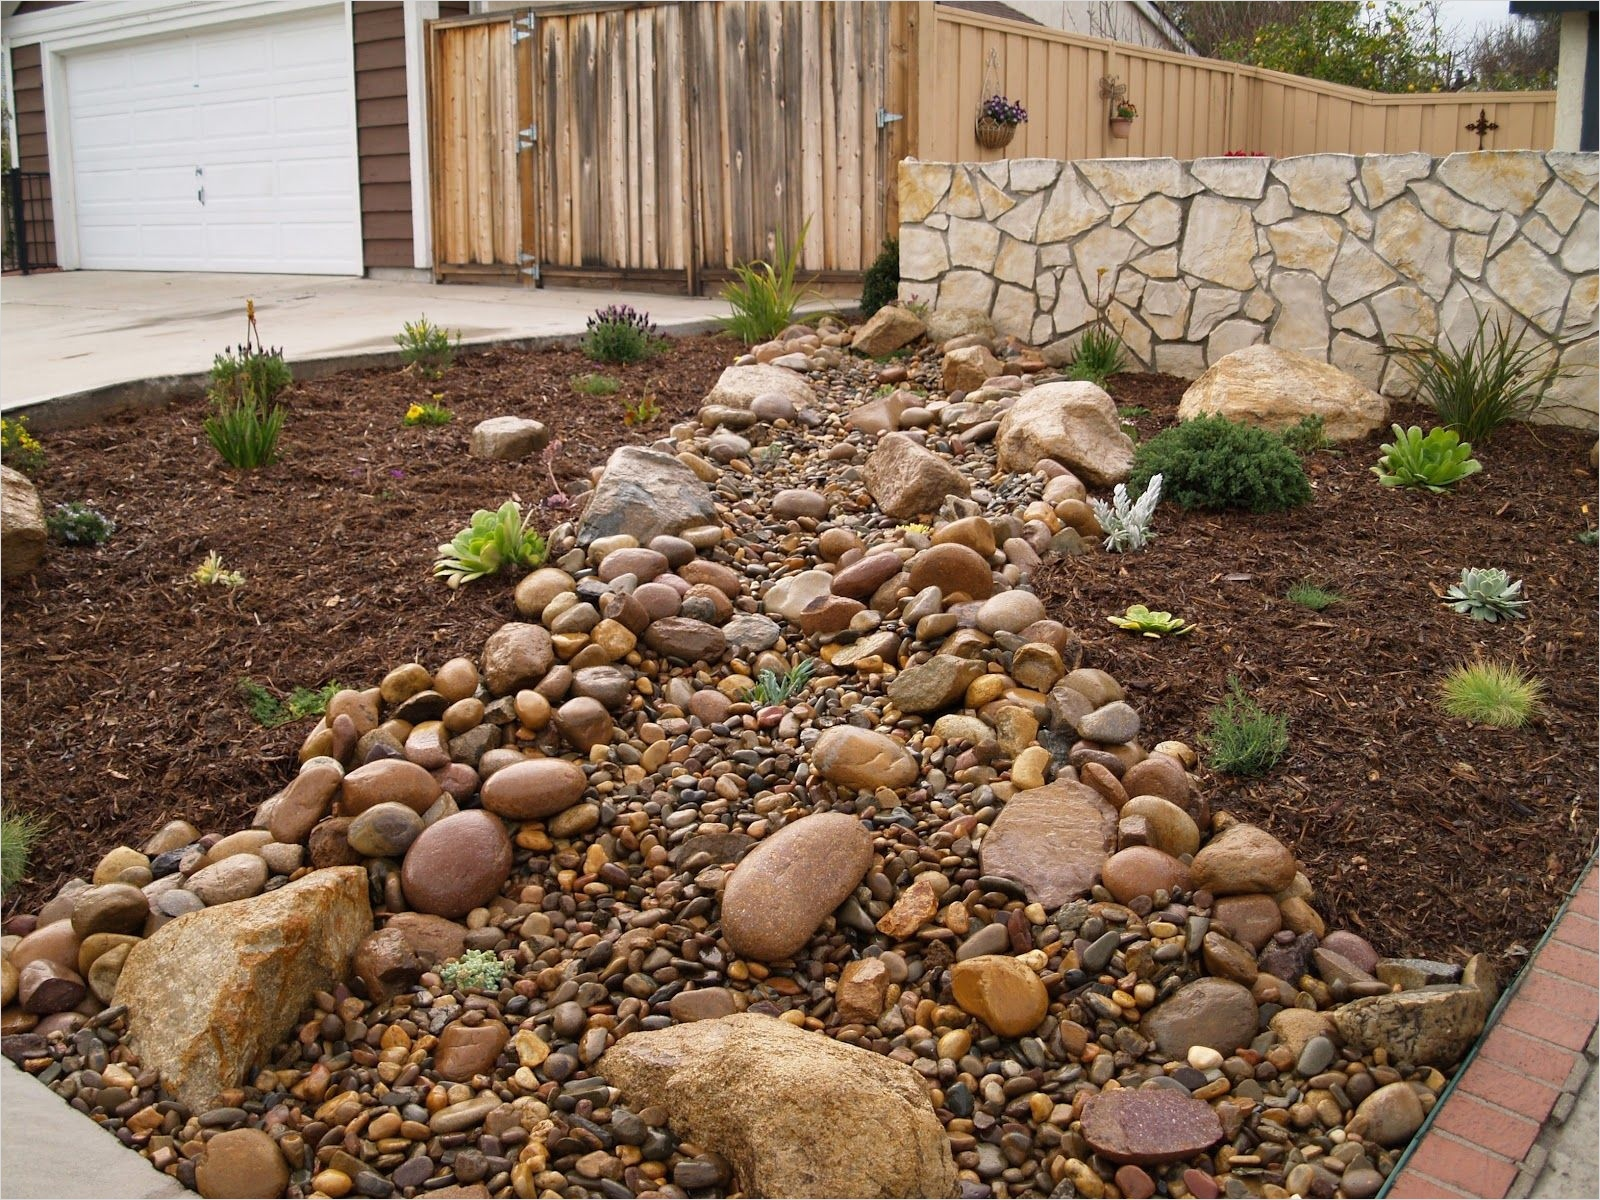 43 Perfect Gravel Landscaping Ideas 72 Gravel Mulch Landscaping Two Mulch Landscaping Types 3